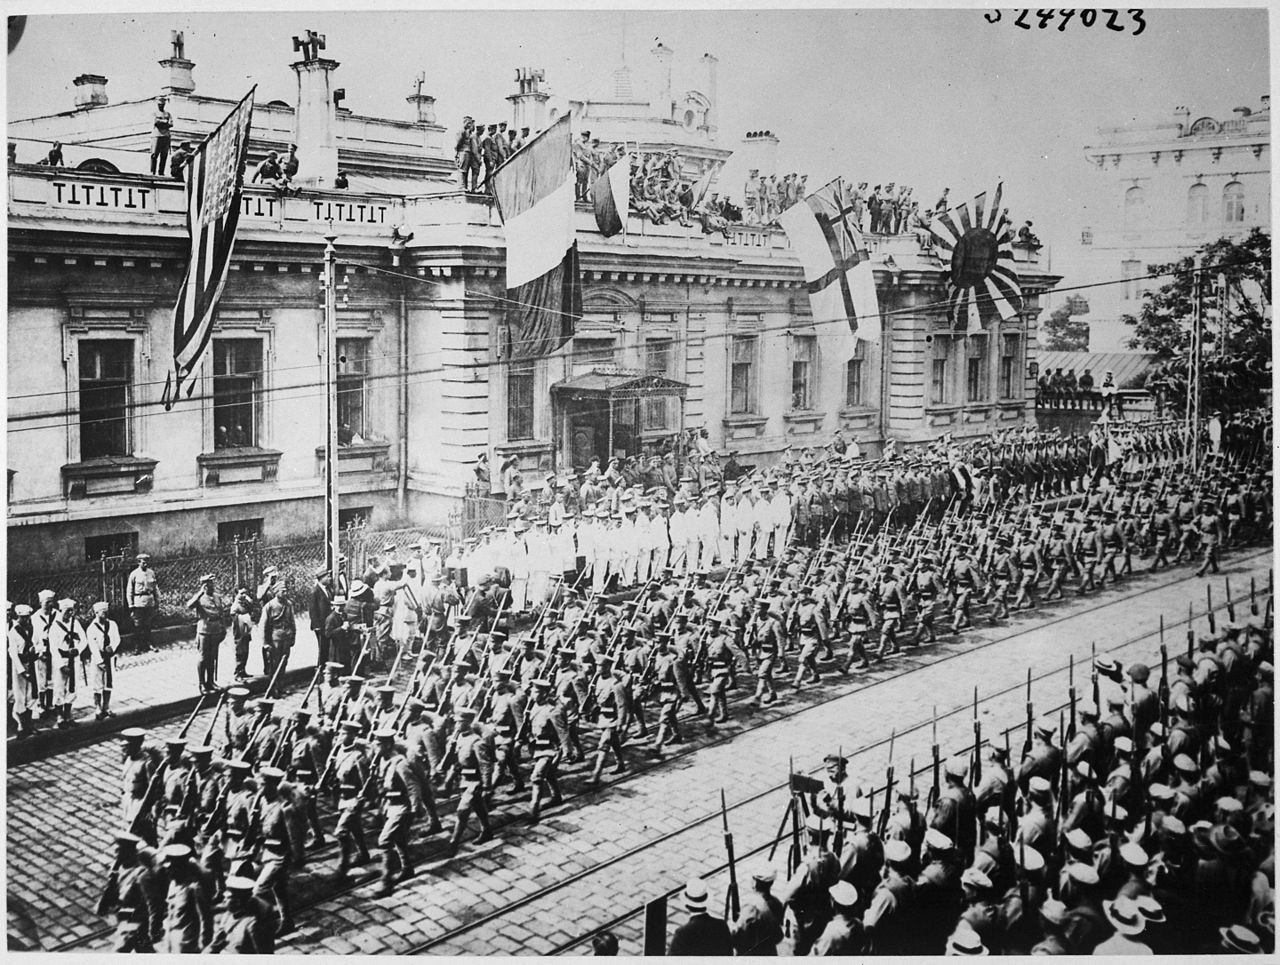 Vladivostok, Russia, September 1919. Soldiers and sailors from many countries are lined up in front of the Allies Headquarters Building.